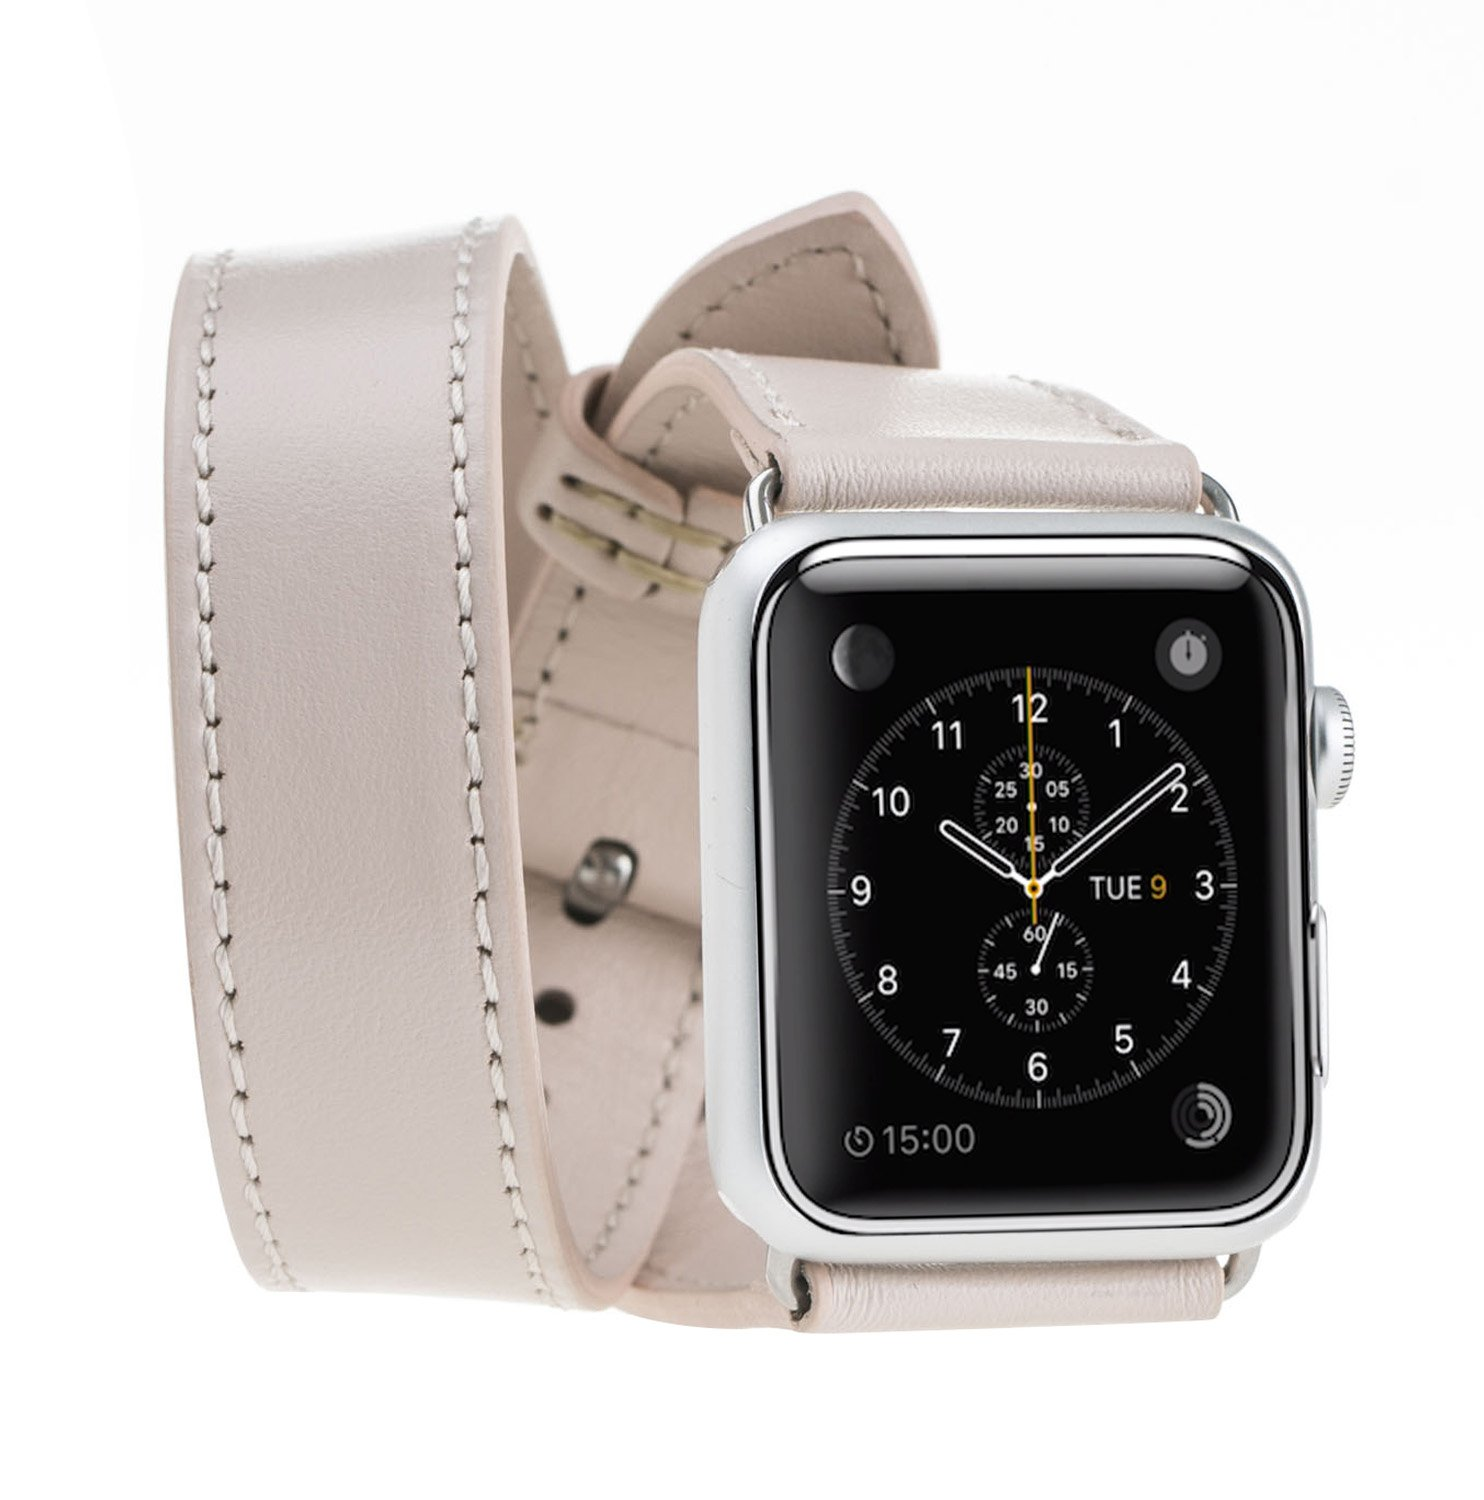 Apple Watch Band 42mm Double Tour BlueJay Genuine Handmade Premium Luxury Leather Replacement Strap, Band for Apple Watch 42mm Series 1 & 2 (Nude)